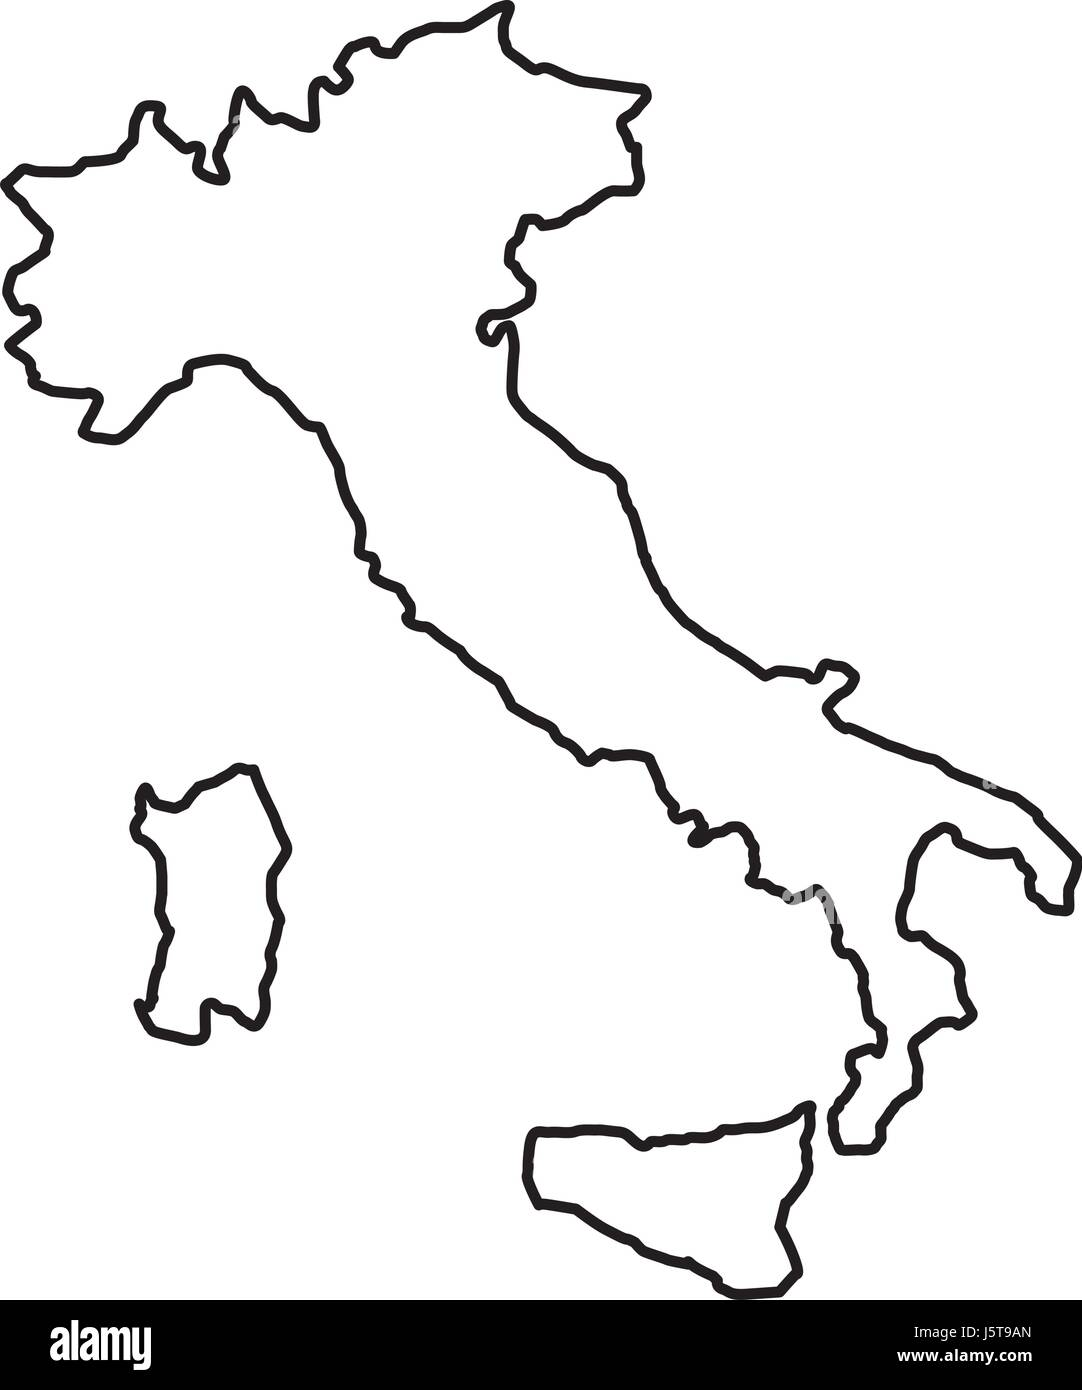 Map Of Italy Black And White.Italy Map Black And White Stock Photos Images Alamy